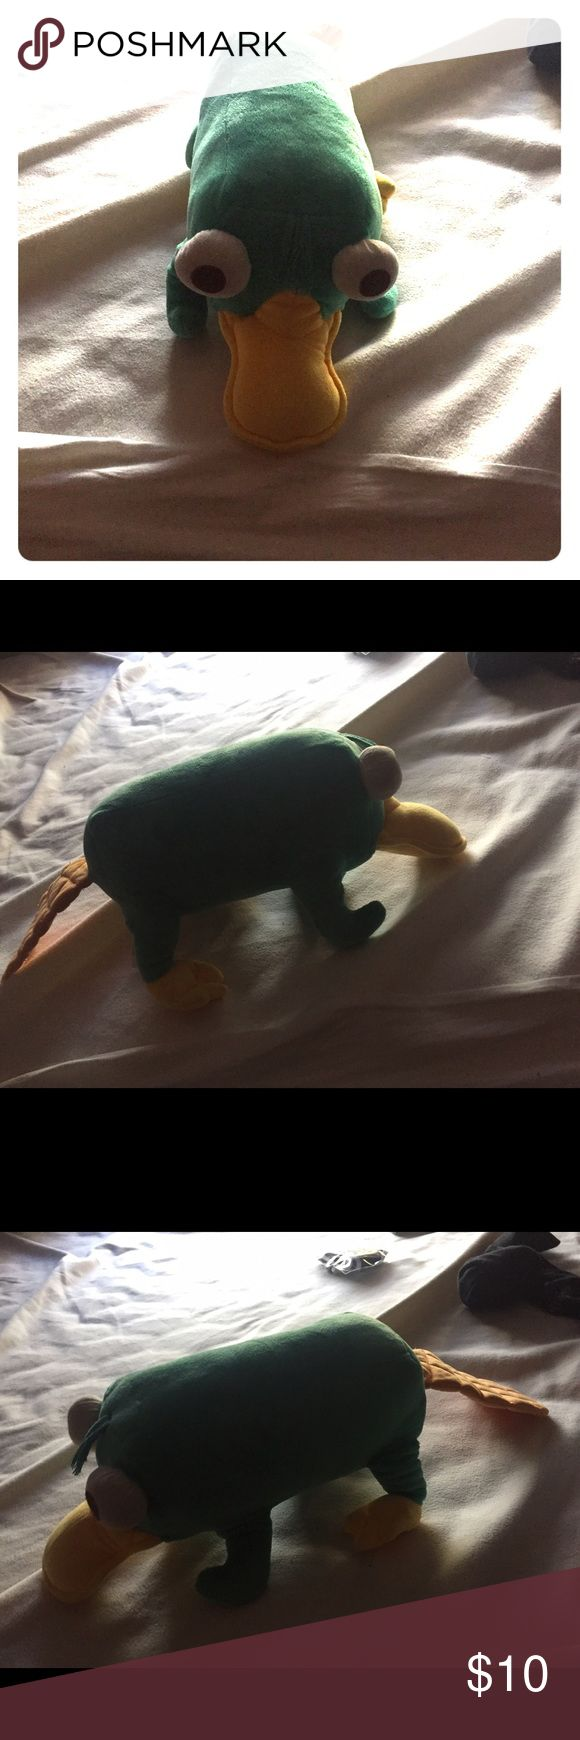 Perry the platypus plush toy with sound Great condition plush toy from the show Phineas and Ferb. I loved this thing but it's time to let go. Clean. and his chatter noise still works. Great for kids. Other